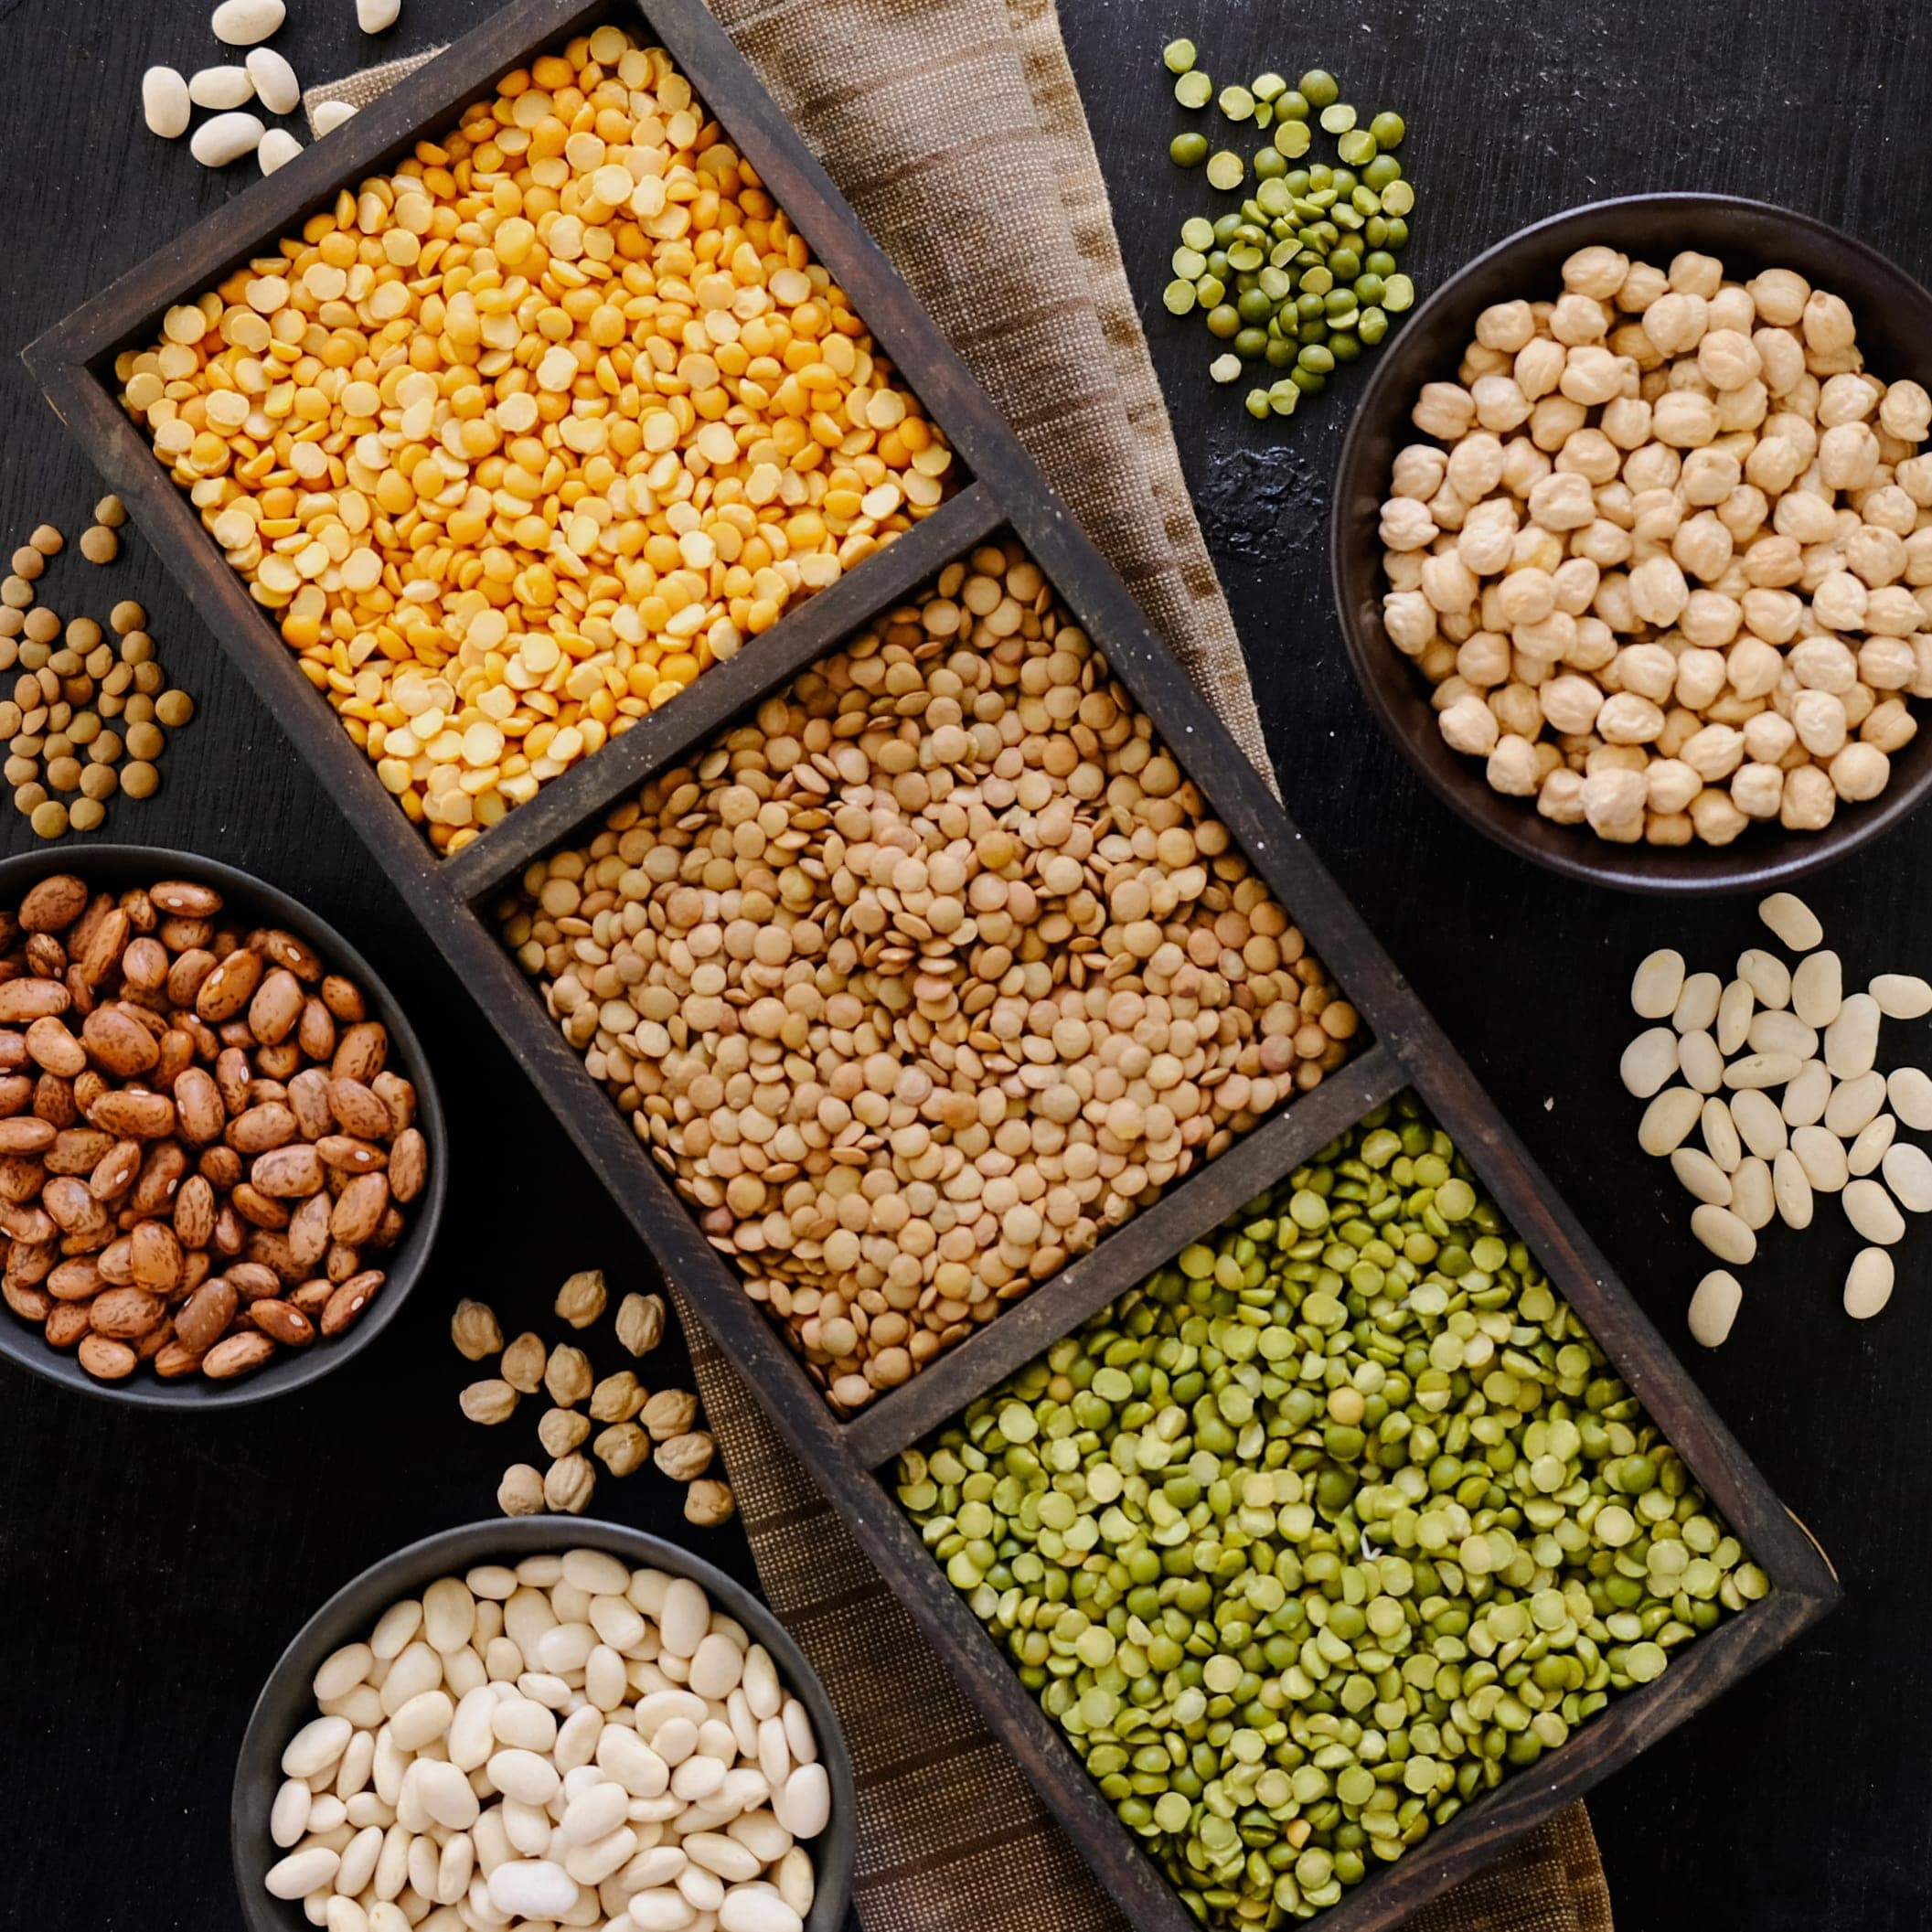 variety-of-raw-pulses-in-dark